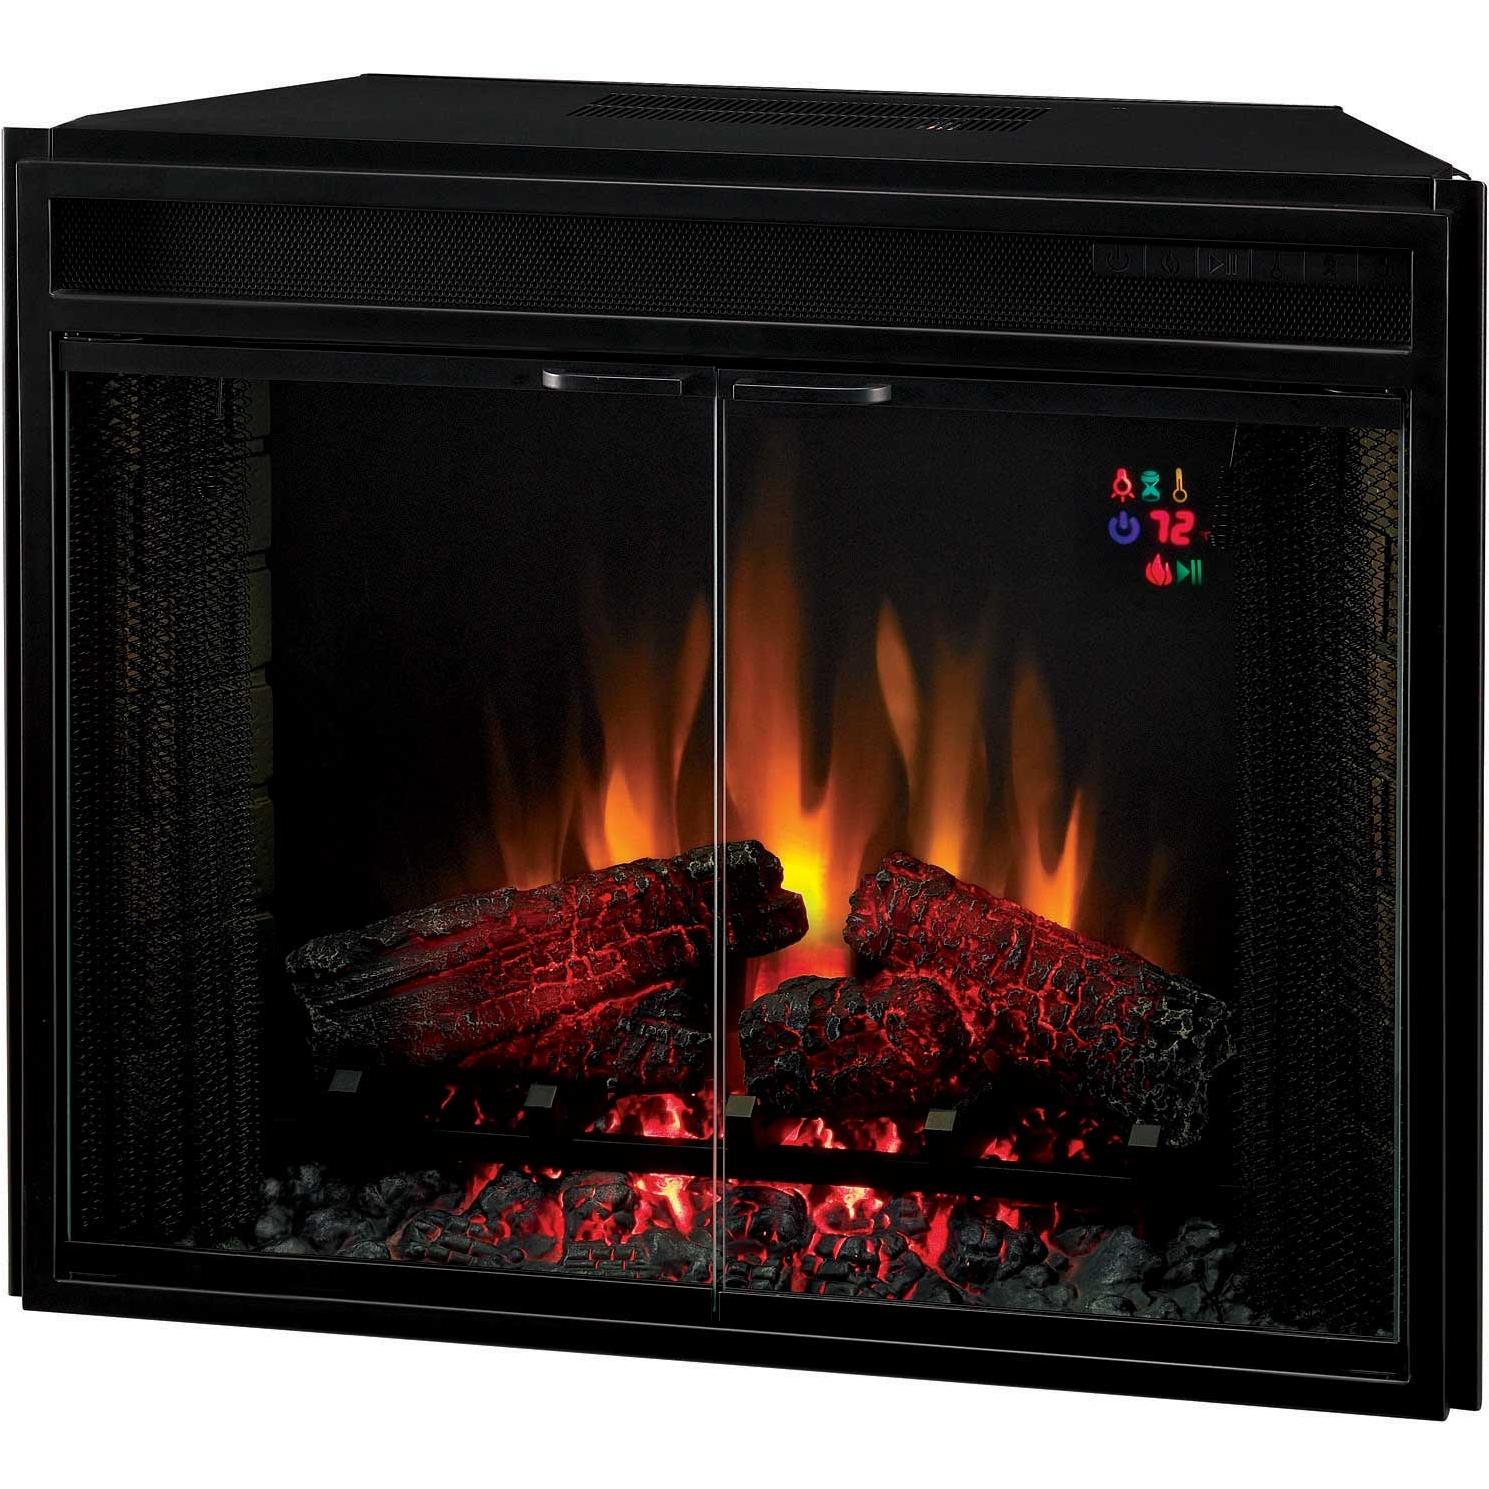 ClassicFlame 28EF025GRA 28 Inch Electric Fireplace Insert With Doors And Remote - Black